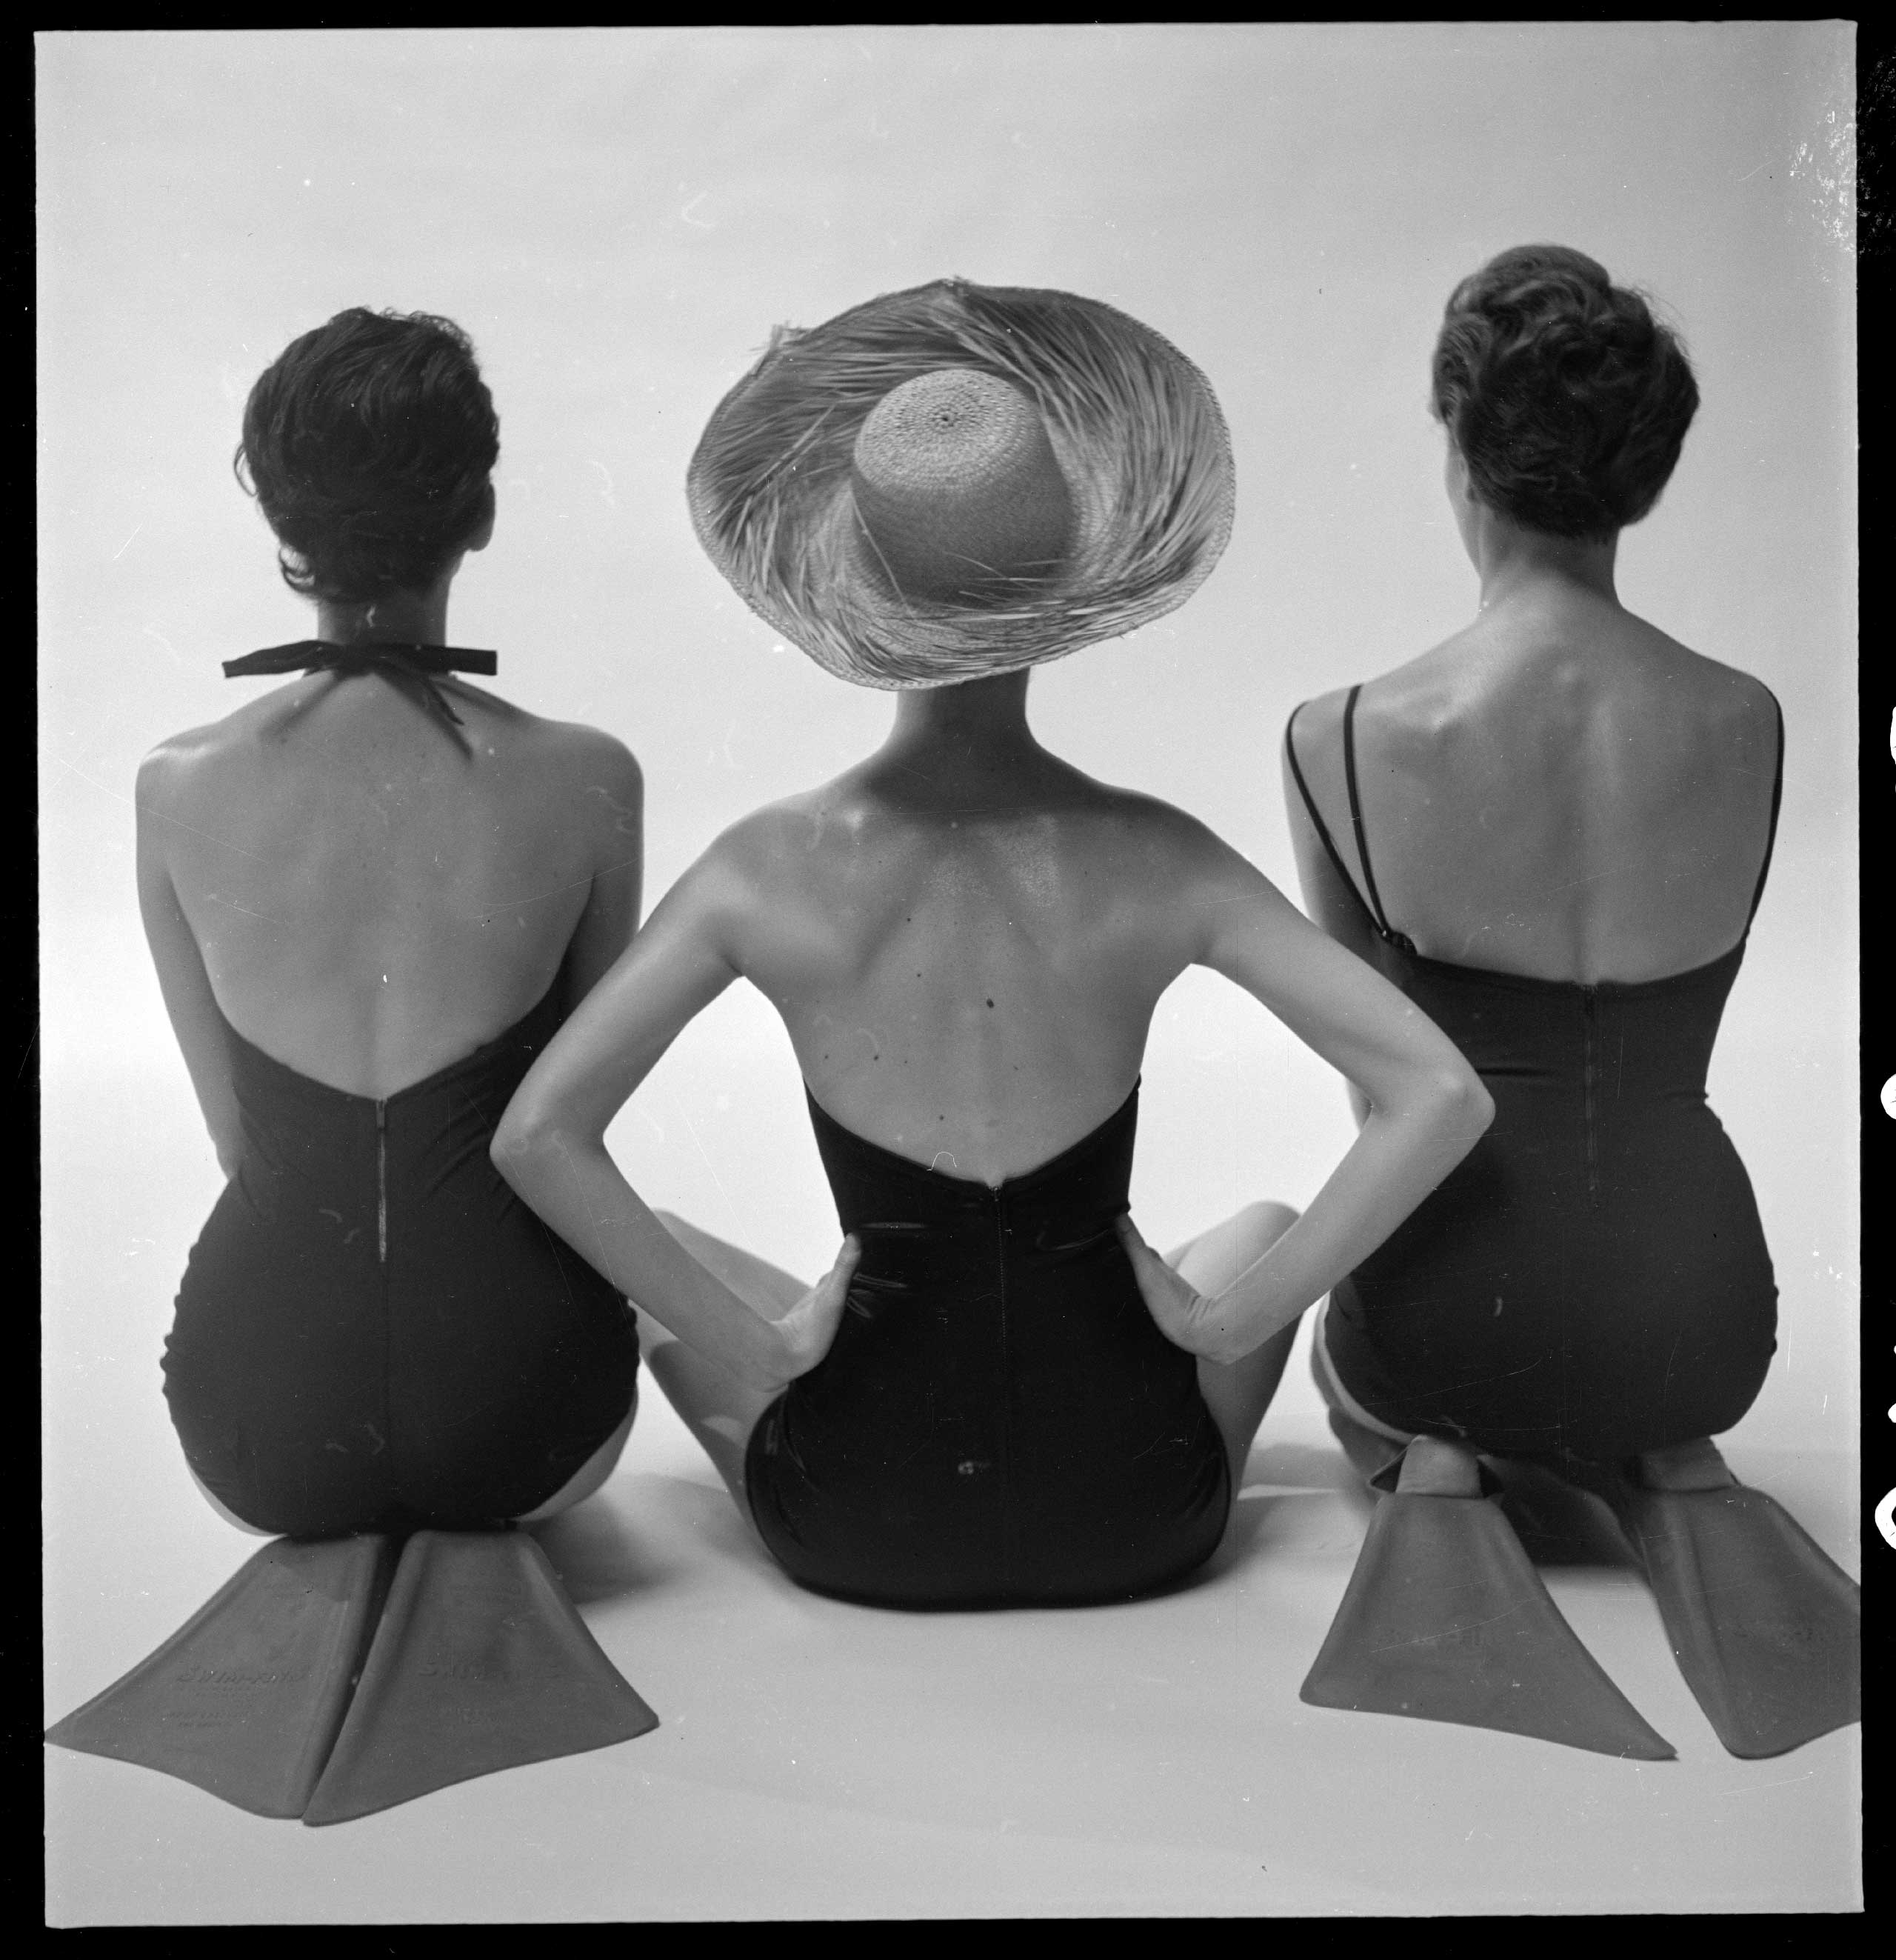 Back view of fashion models in swim suits, two kneeling wearing swim fins, and one seated. Published in Harper's bazaar, Jan. 1950.